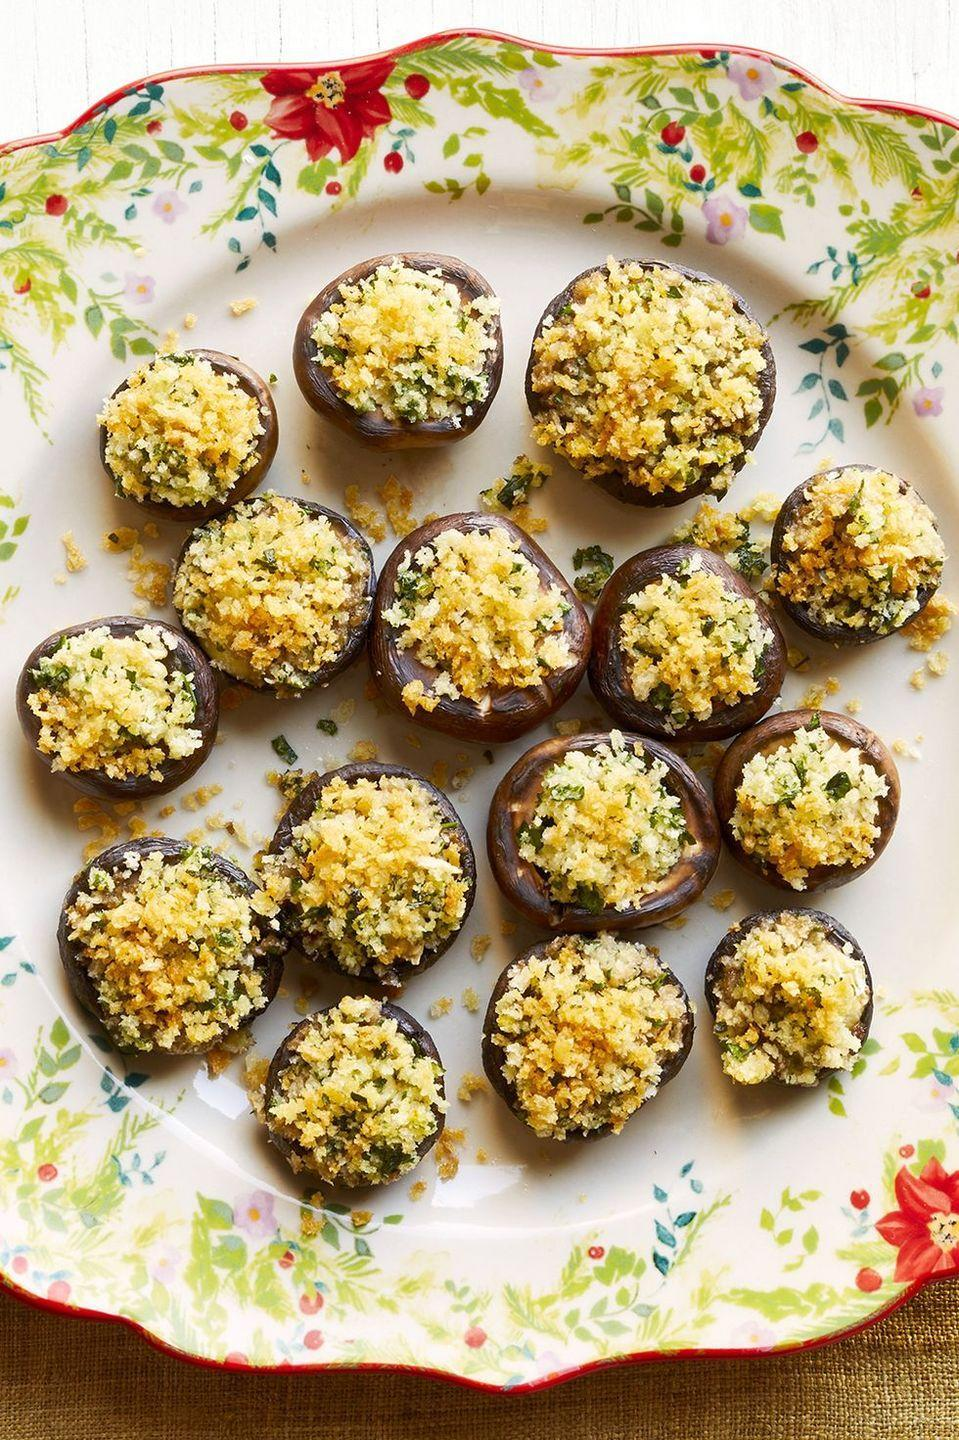 """<p>It's the perfect bite before a big holiday feast. Just be sure to make enough for all your guests—they'll disappear in minutes! </p><p><a href=""""https://www.thepioneerwoman.com/food-cooking/recipes/a34208011/crispy-brie-stuffed-mushrooms-recipe/"""" rel=""""nofollow noopener"""" target=""""_blank"""" data-ylk=""""slk:Get Ree's recipe."""" class=""""link rapid-noclick-resp""""><strong>Get Ree's recipe.</strong></a></p>"""